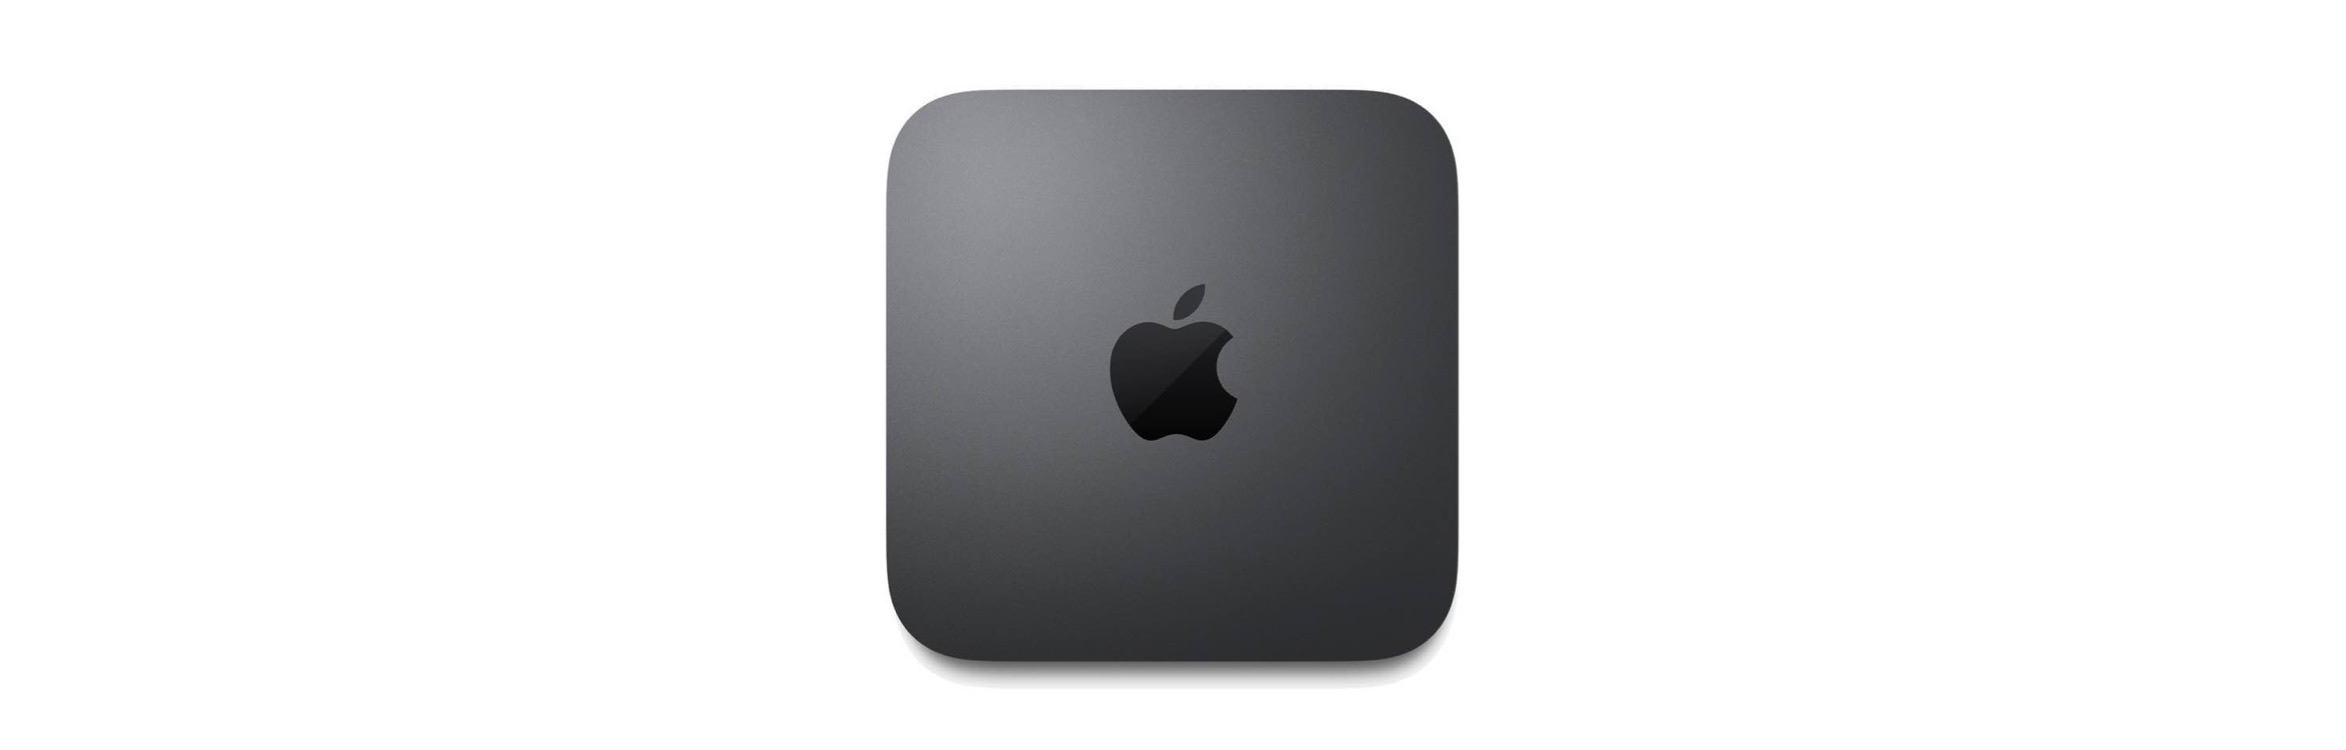 Mac mini Ninove